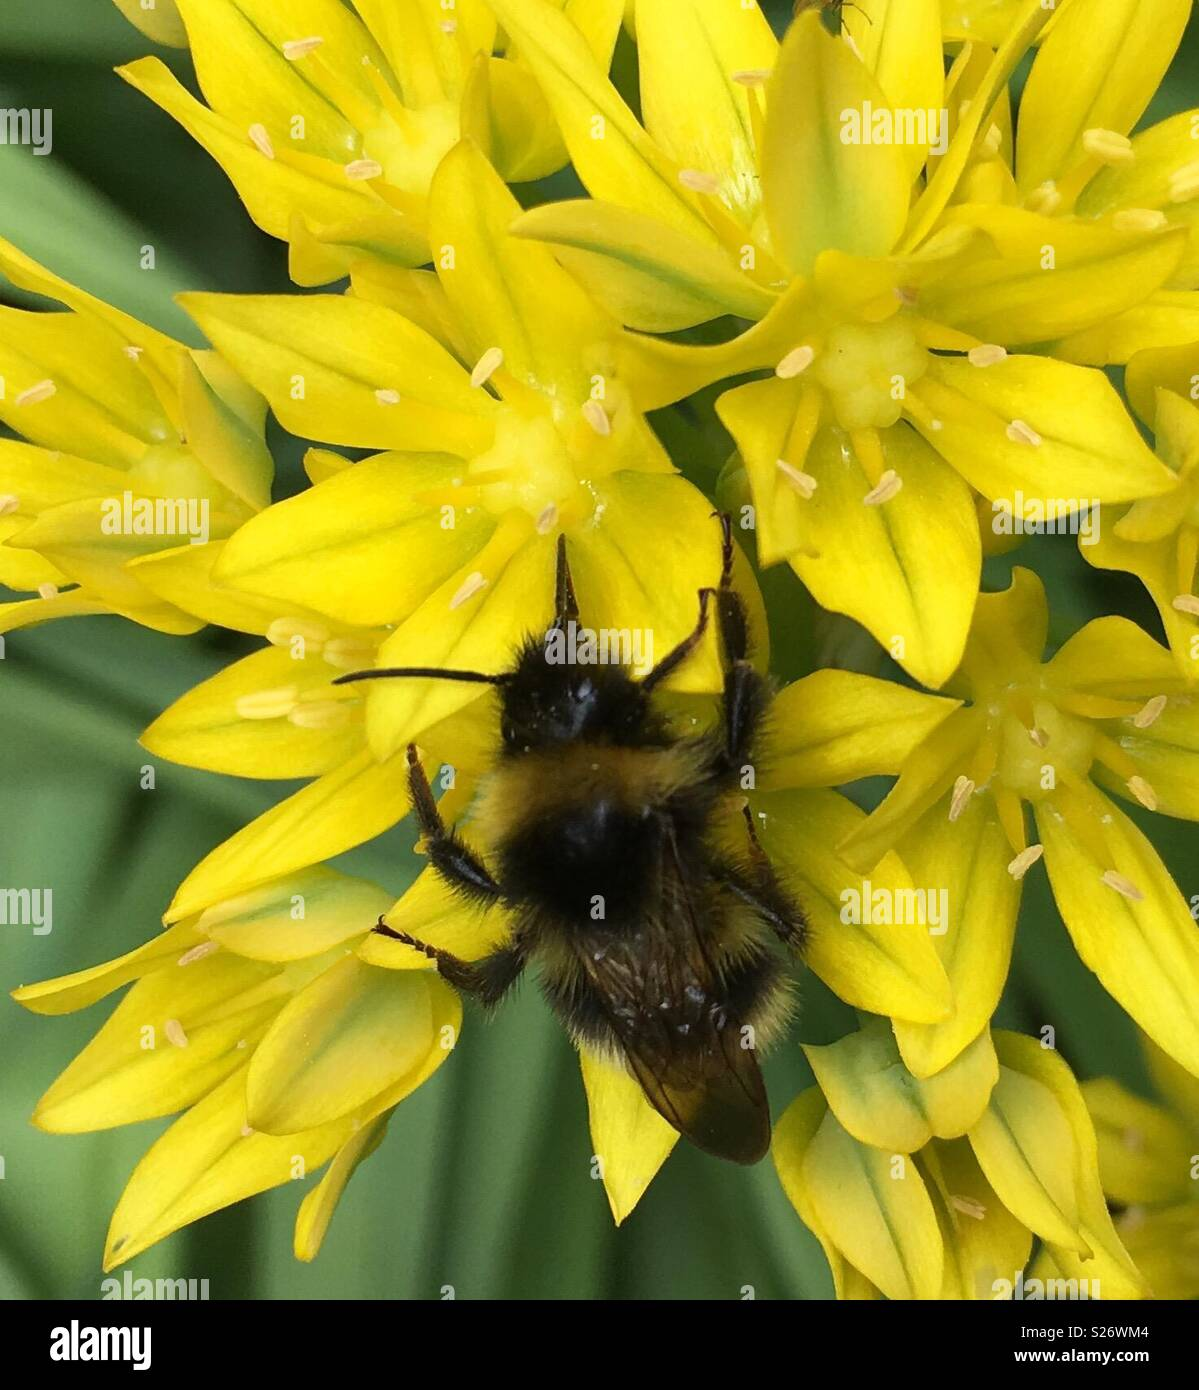 Yellow allium stock photos yellow allium stock images alamy bumble bee collecting pollen from yellow allium flowers stock image mightylinksfo